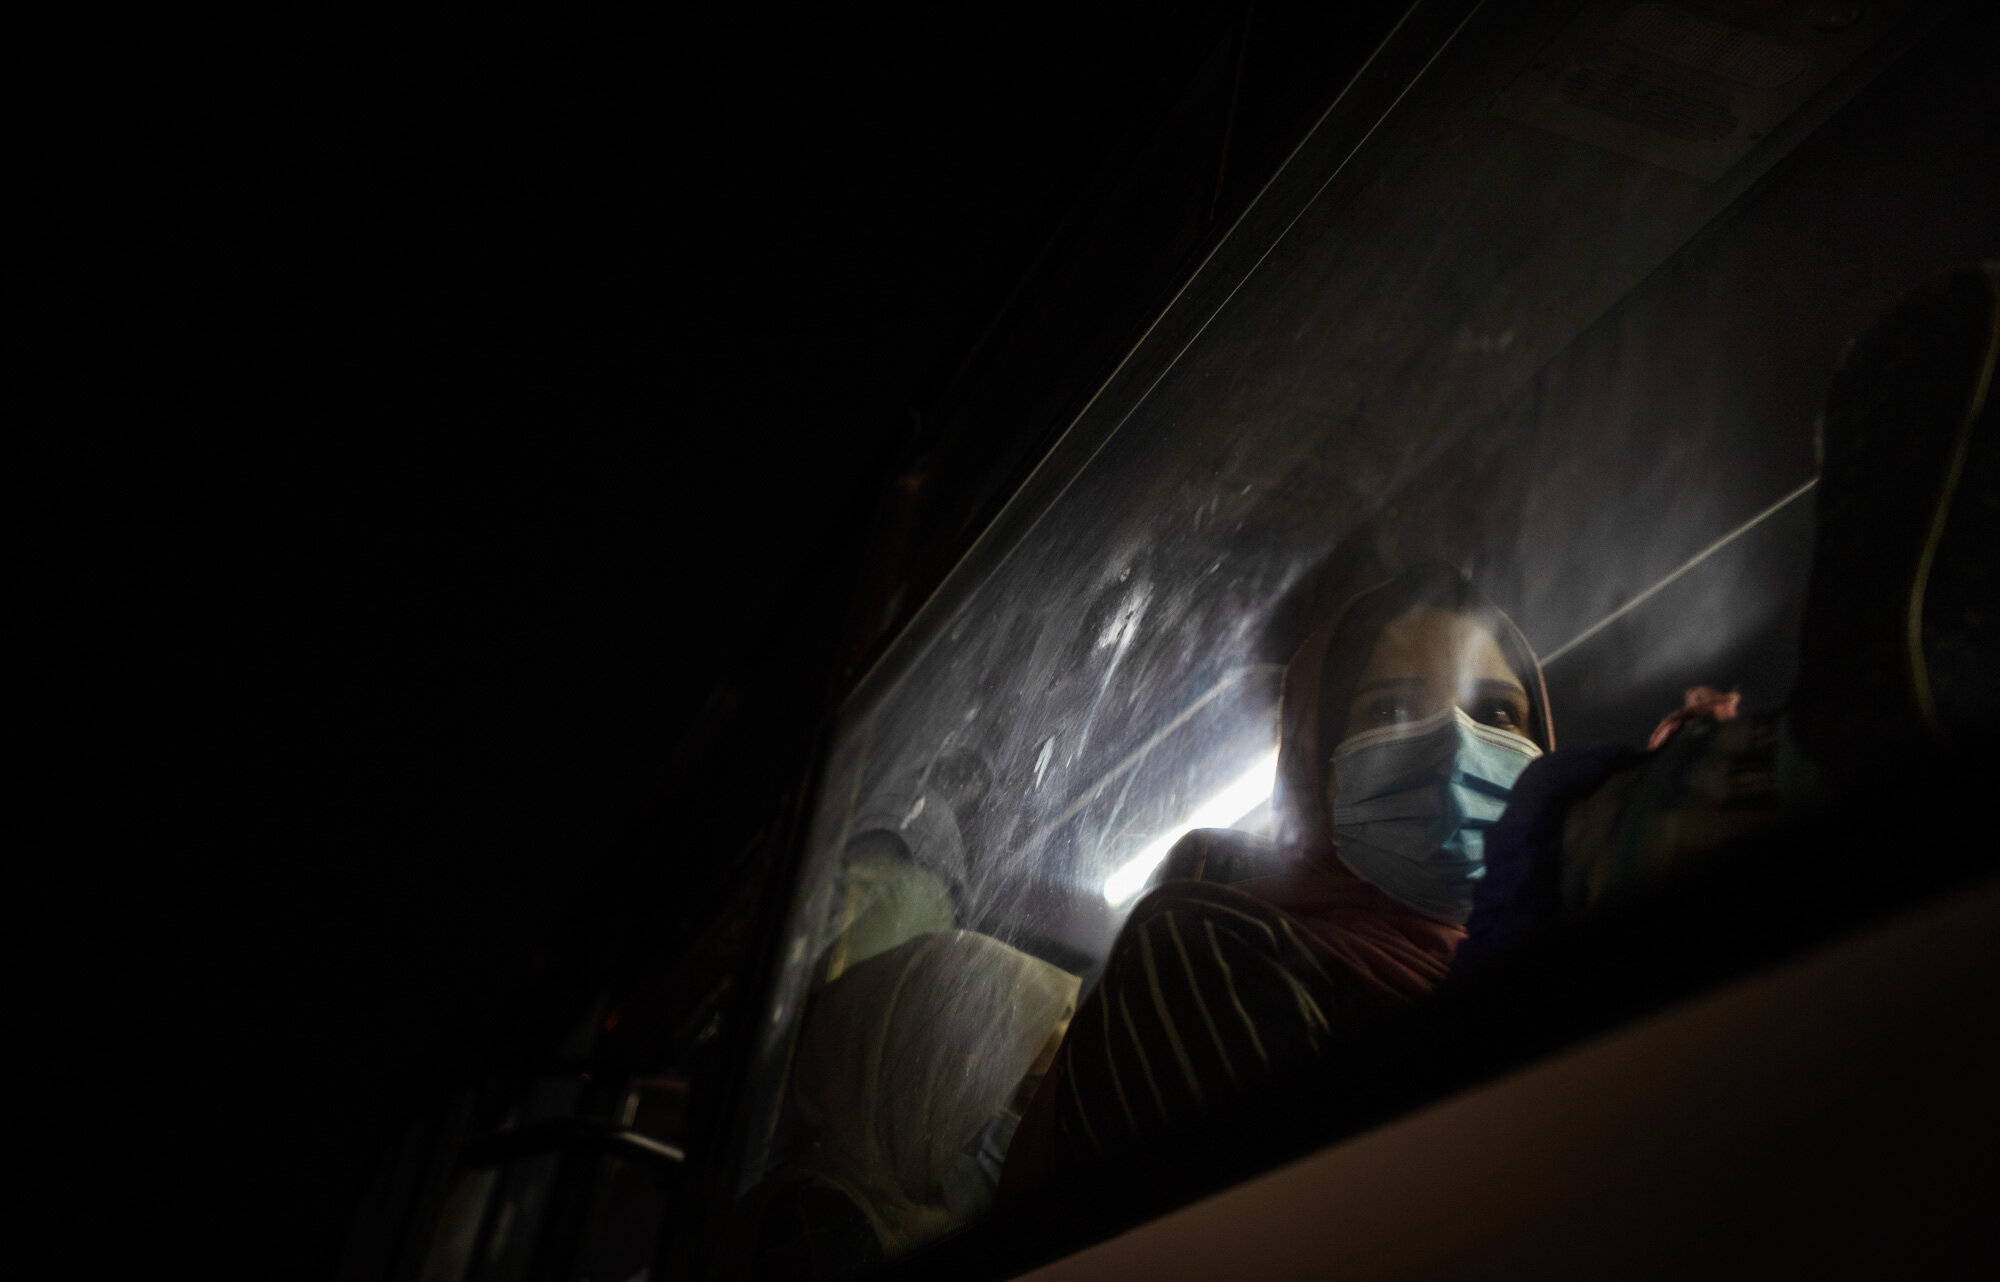 A Palestinian woman wearing a face mask to prevent the spread of the coronavirus waits in a bus in Gaza City to go to the Rafah border crossing into Egypt on Sept. 27, 2020. (AP Photo/Khalil Hamra)